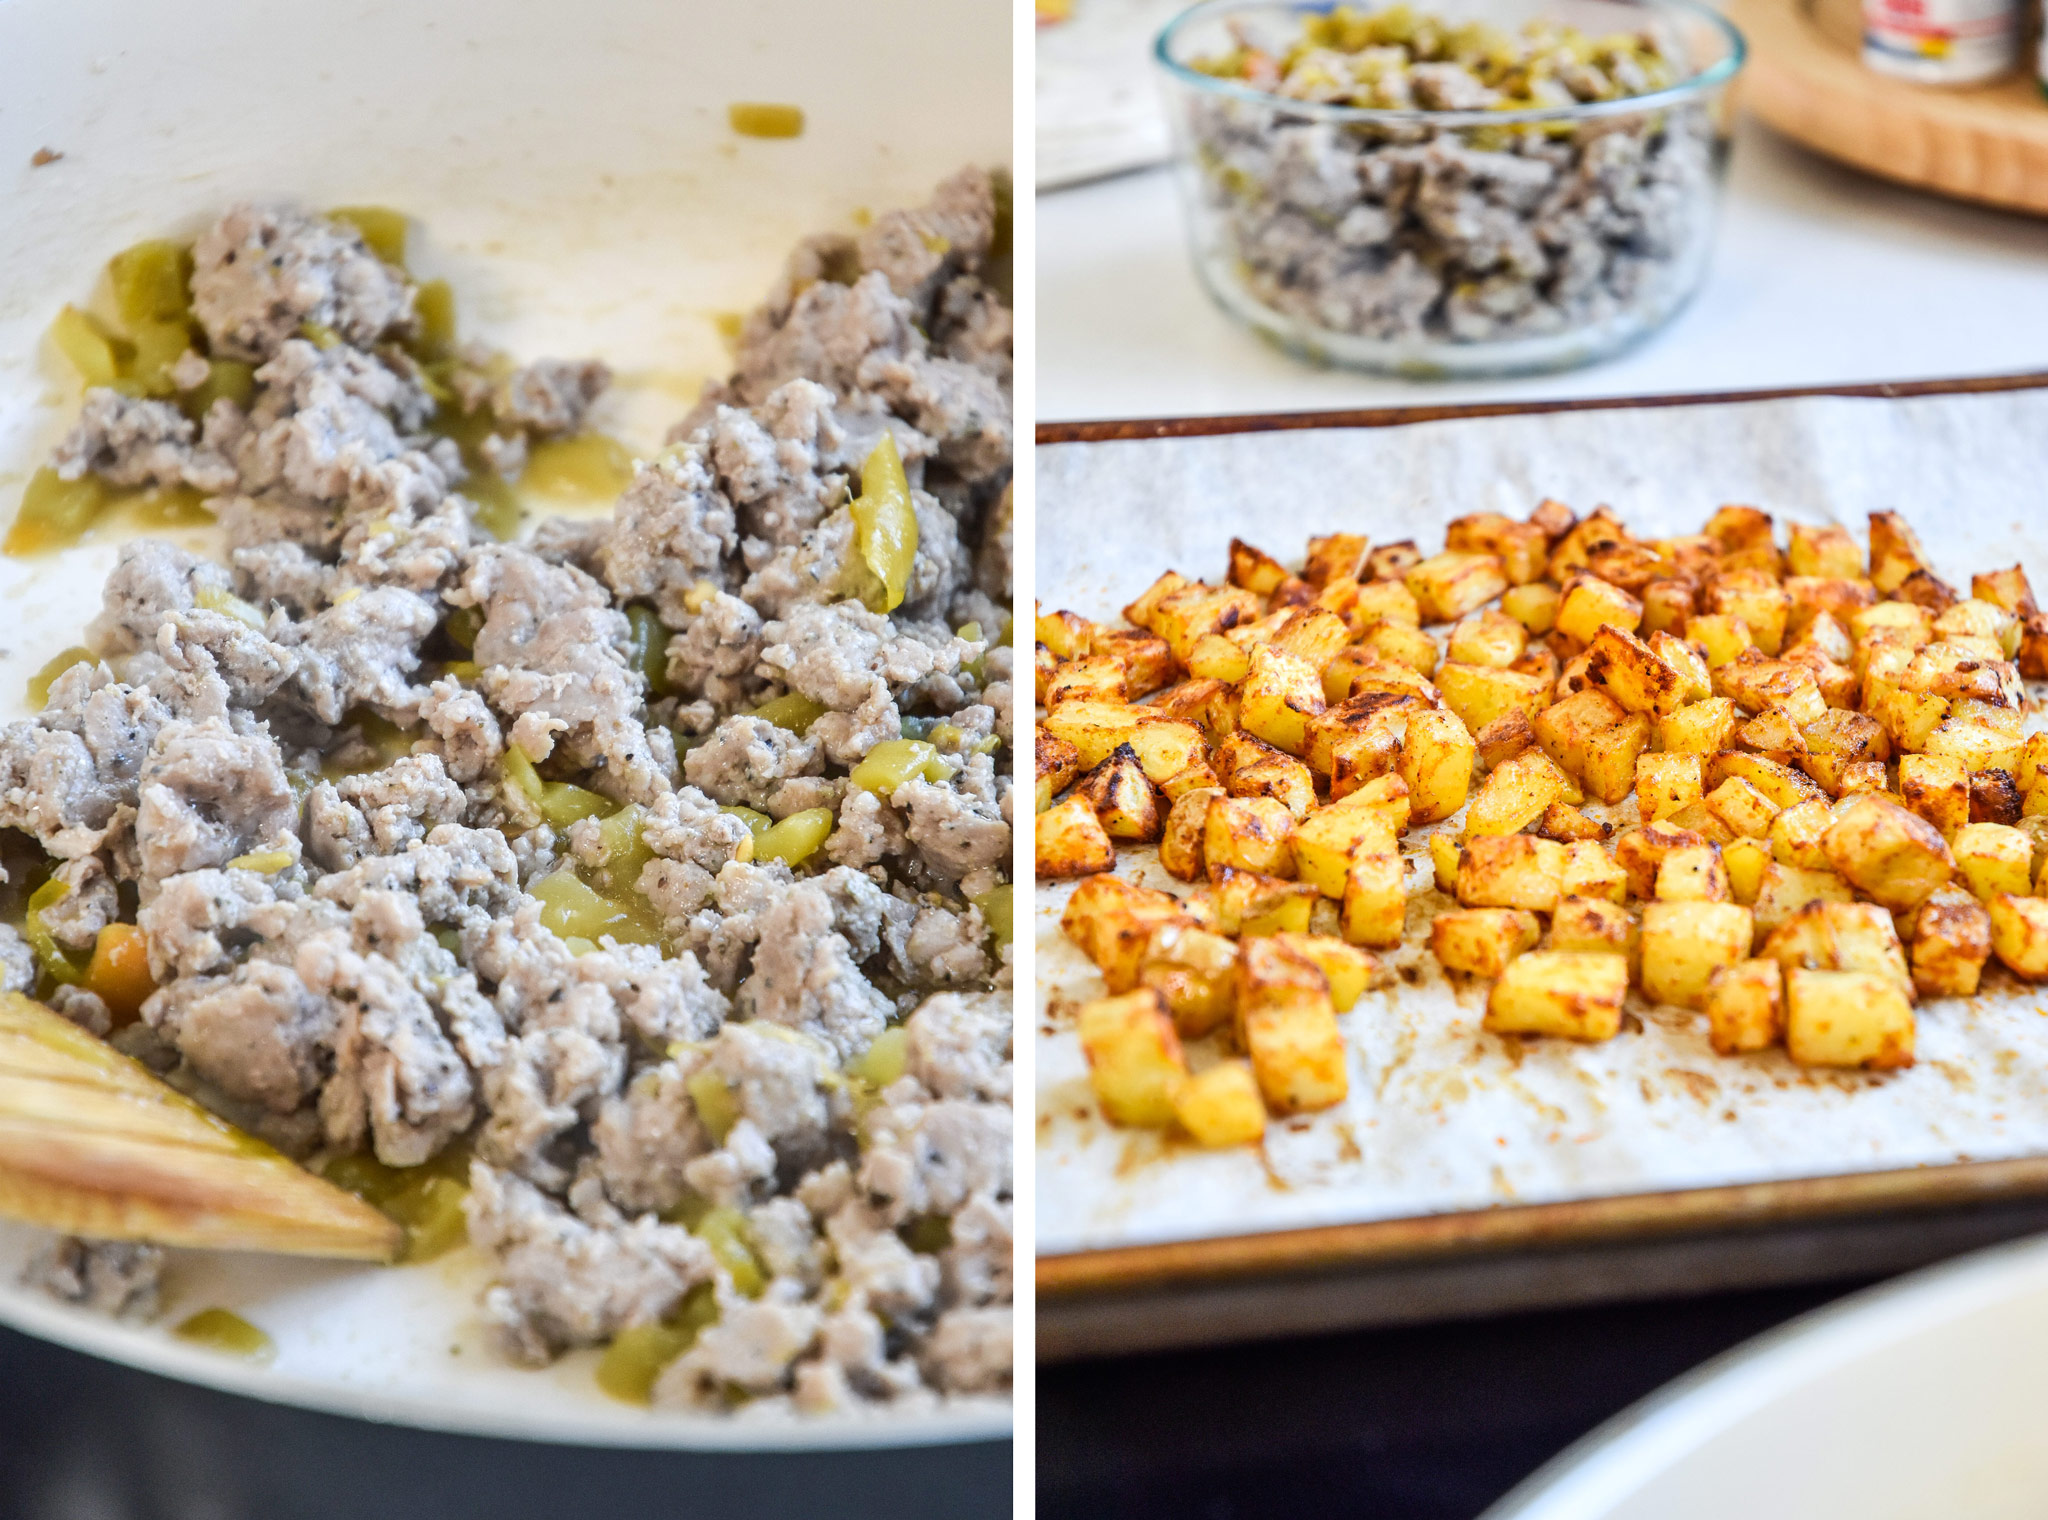 the cooked ground meat and cooked potatoes for the air fryer breakfast burritos